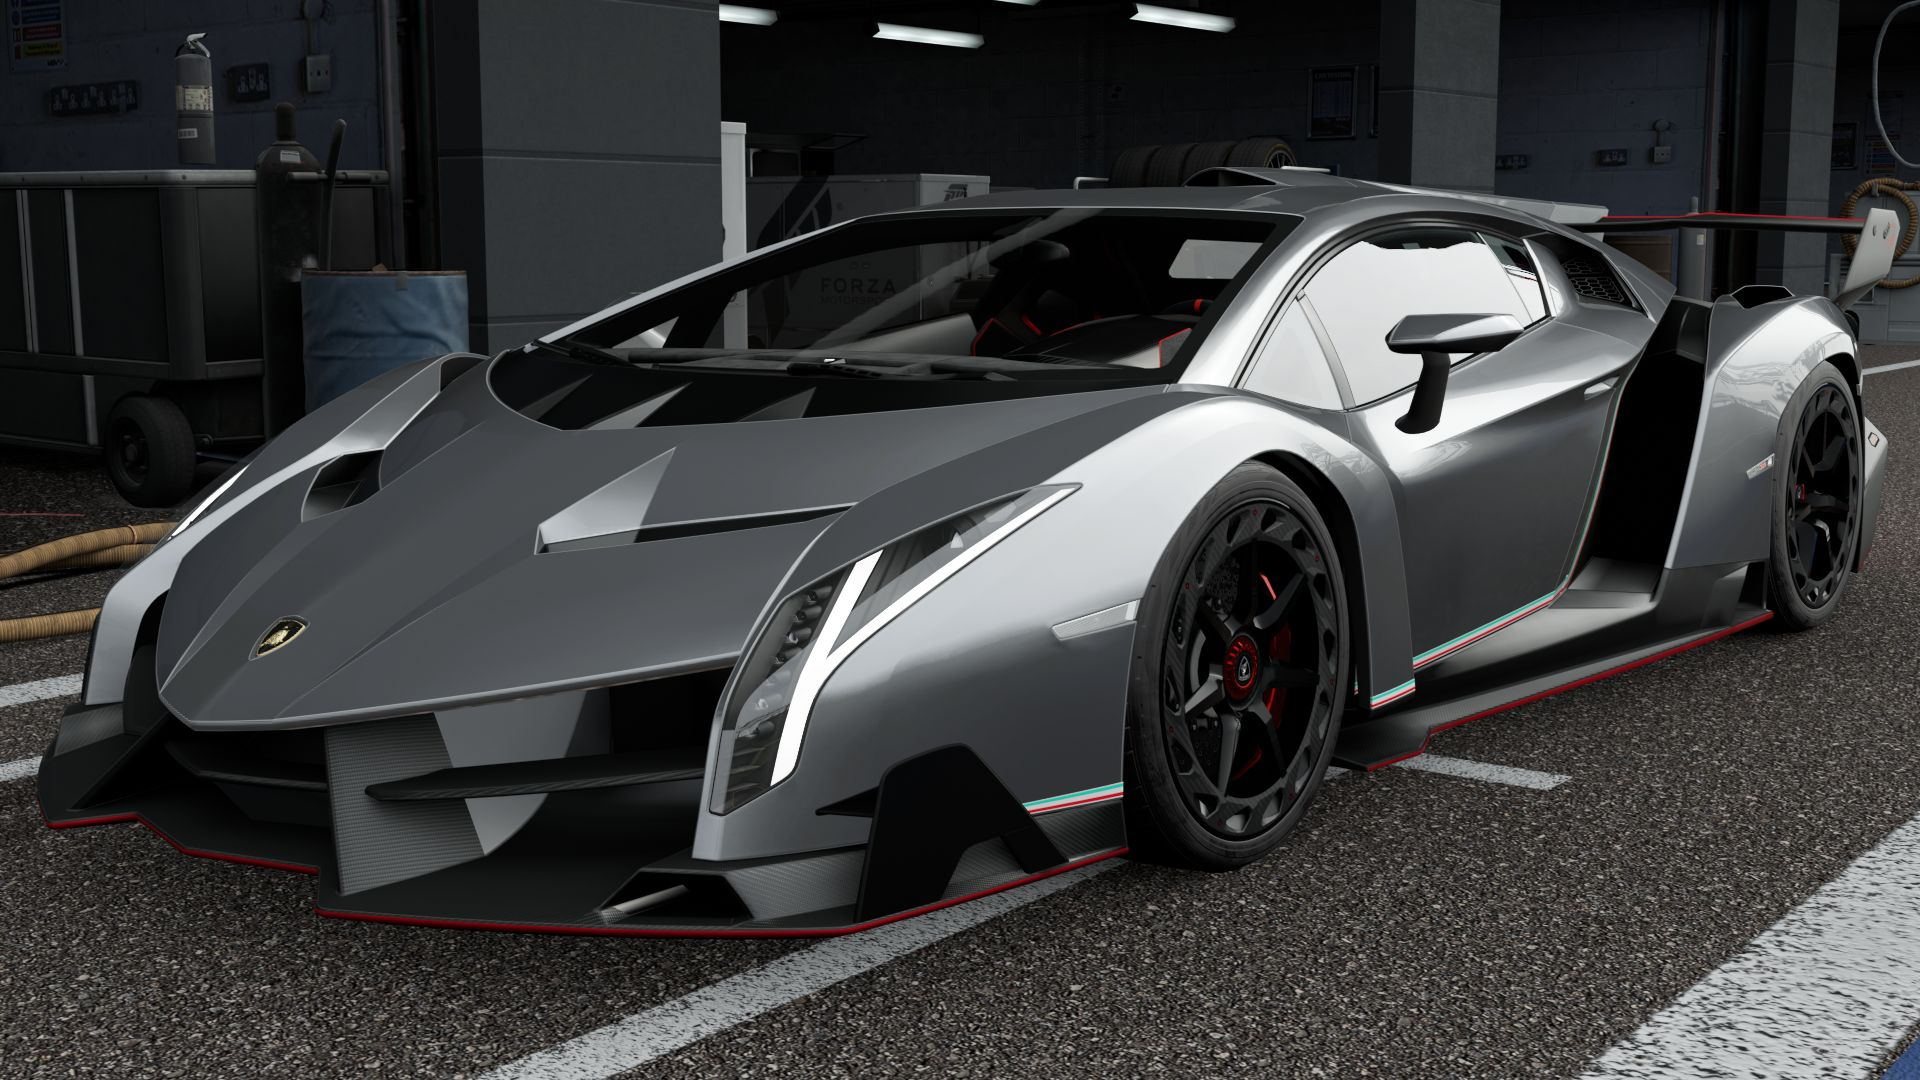 Lamborghini Veneno | Forza Motorsport Wiki | FANDOM powered by Wikia